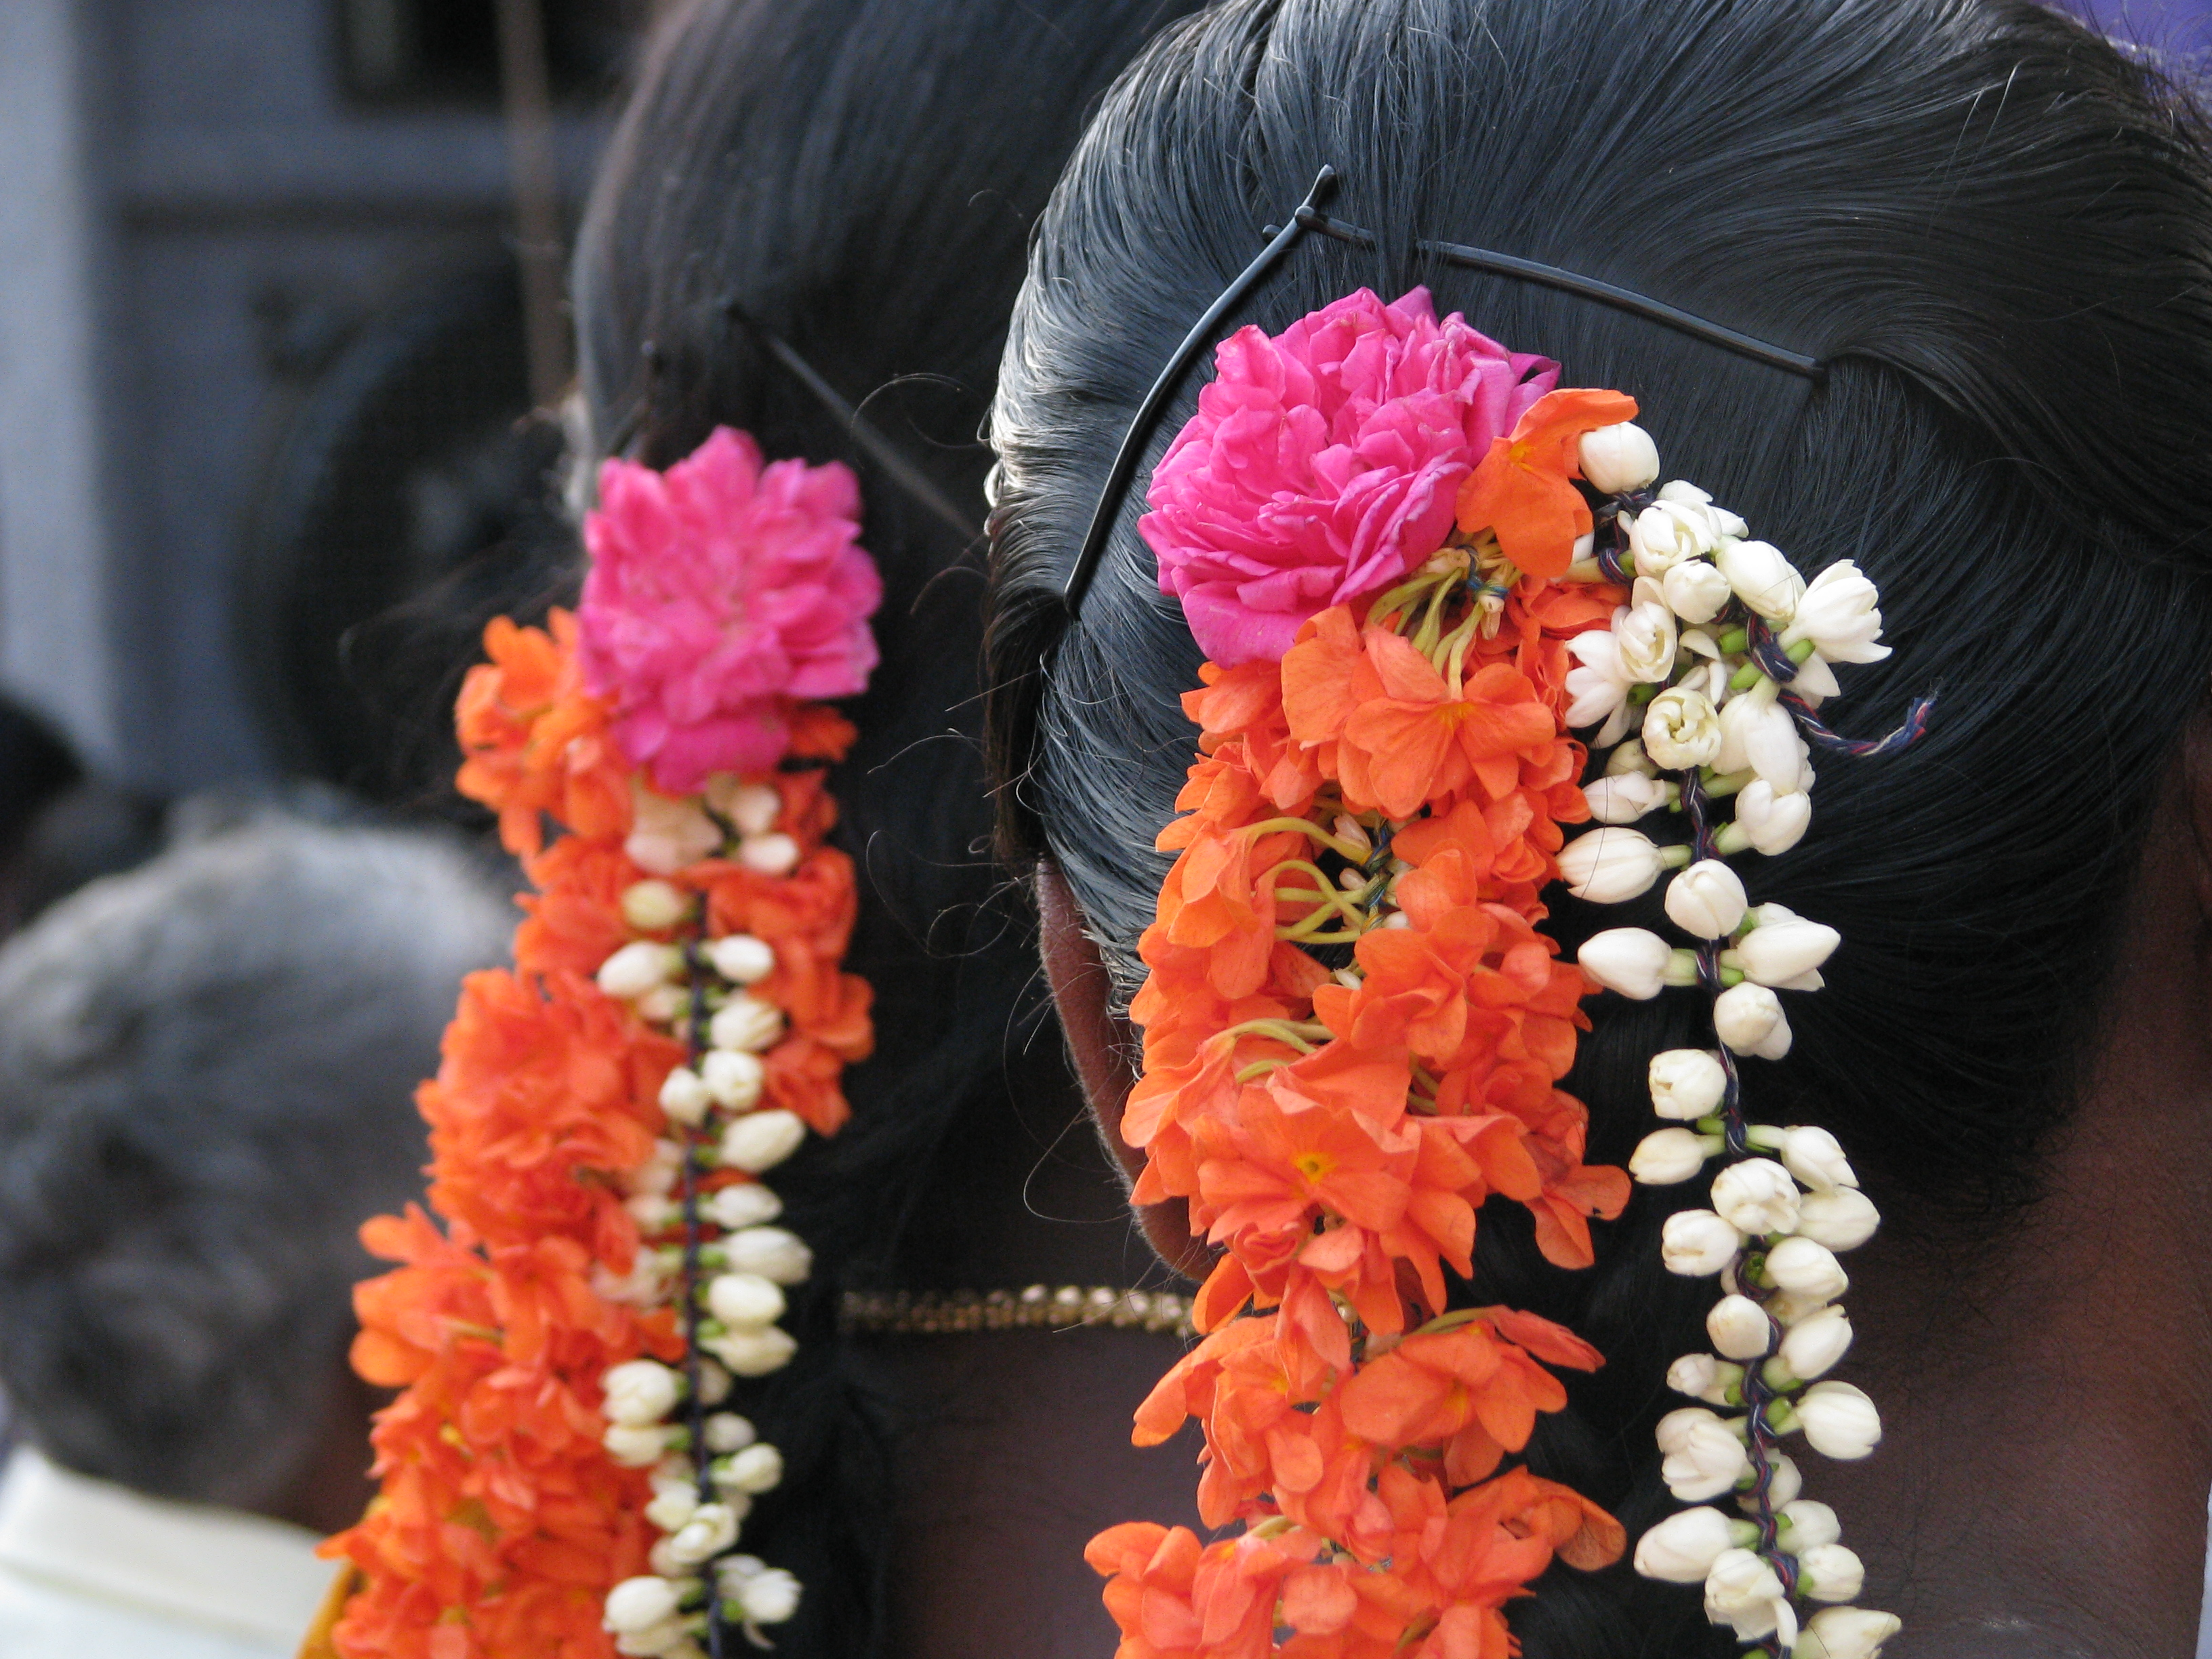 Fileflowers worn in hair tamil nadug wikimedia commons fileflowers worn in hair tamil nadug izmirmasajfo